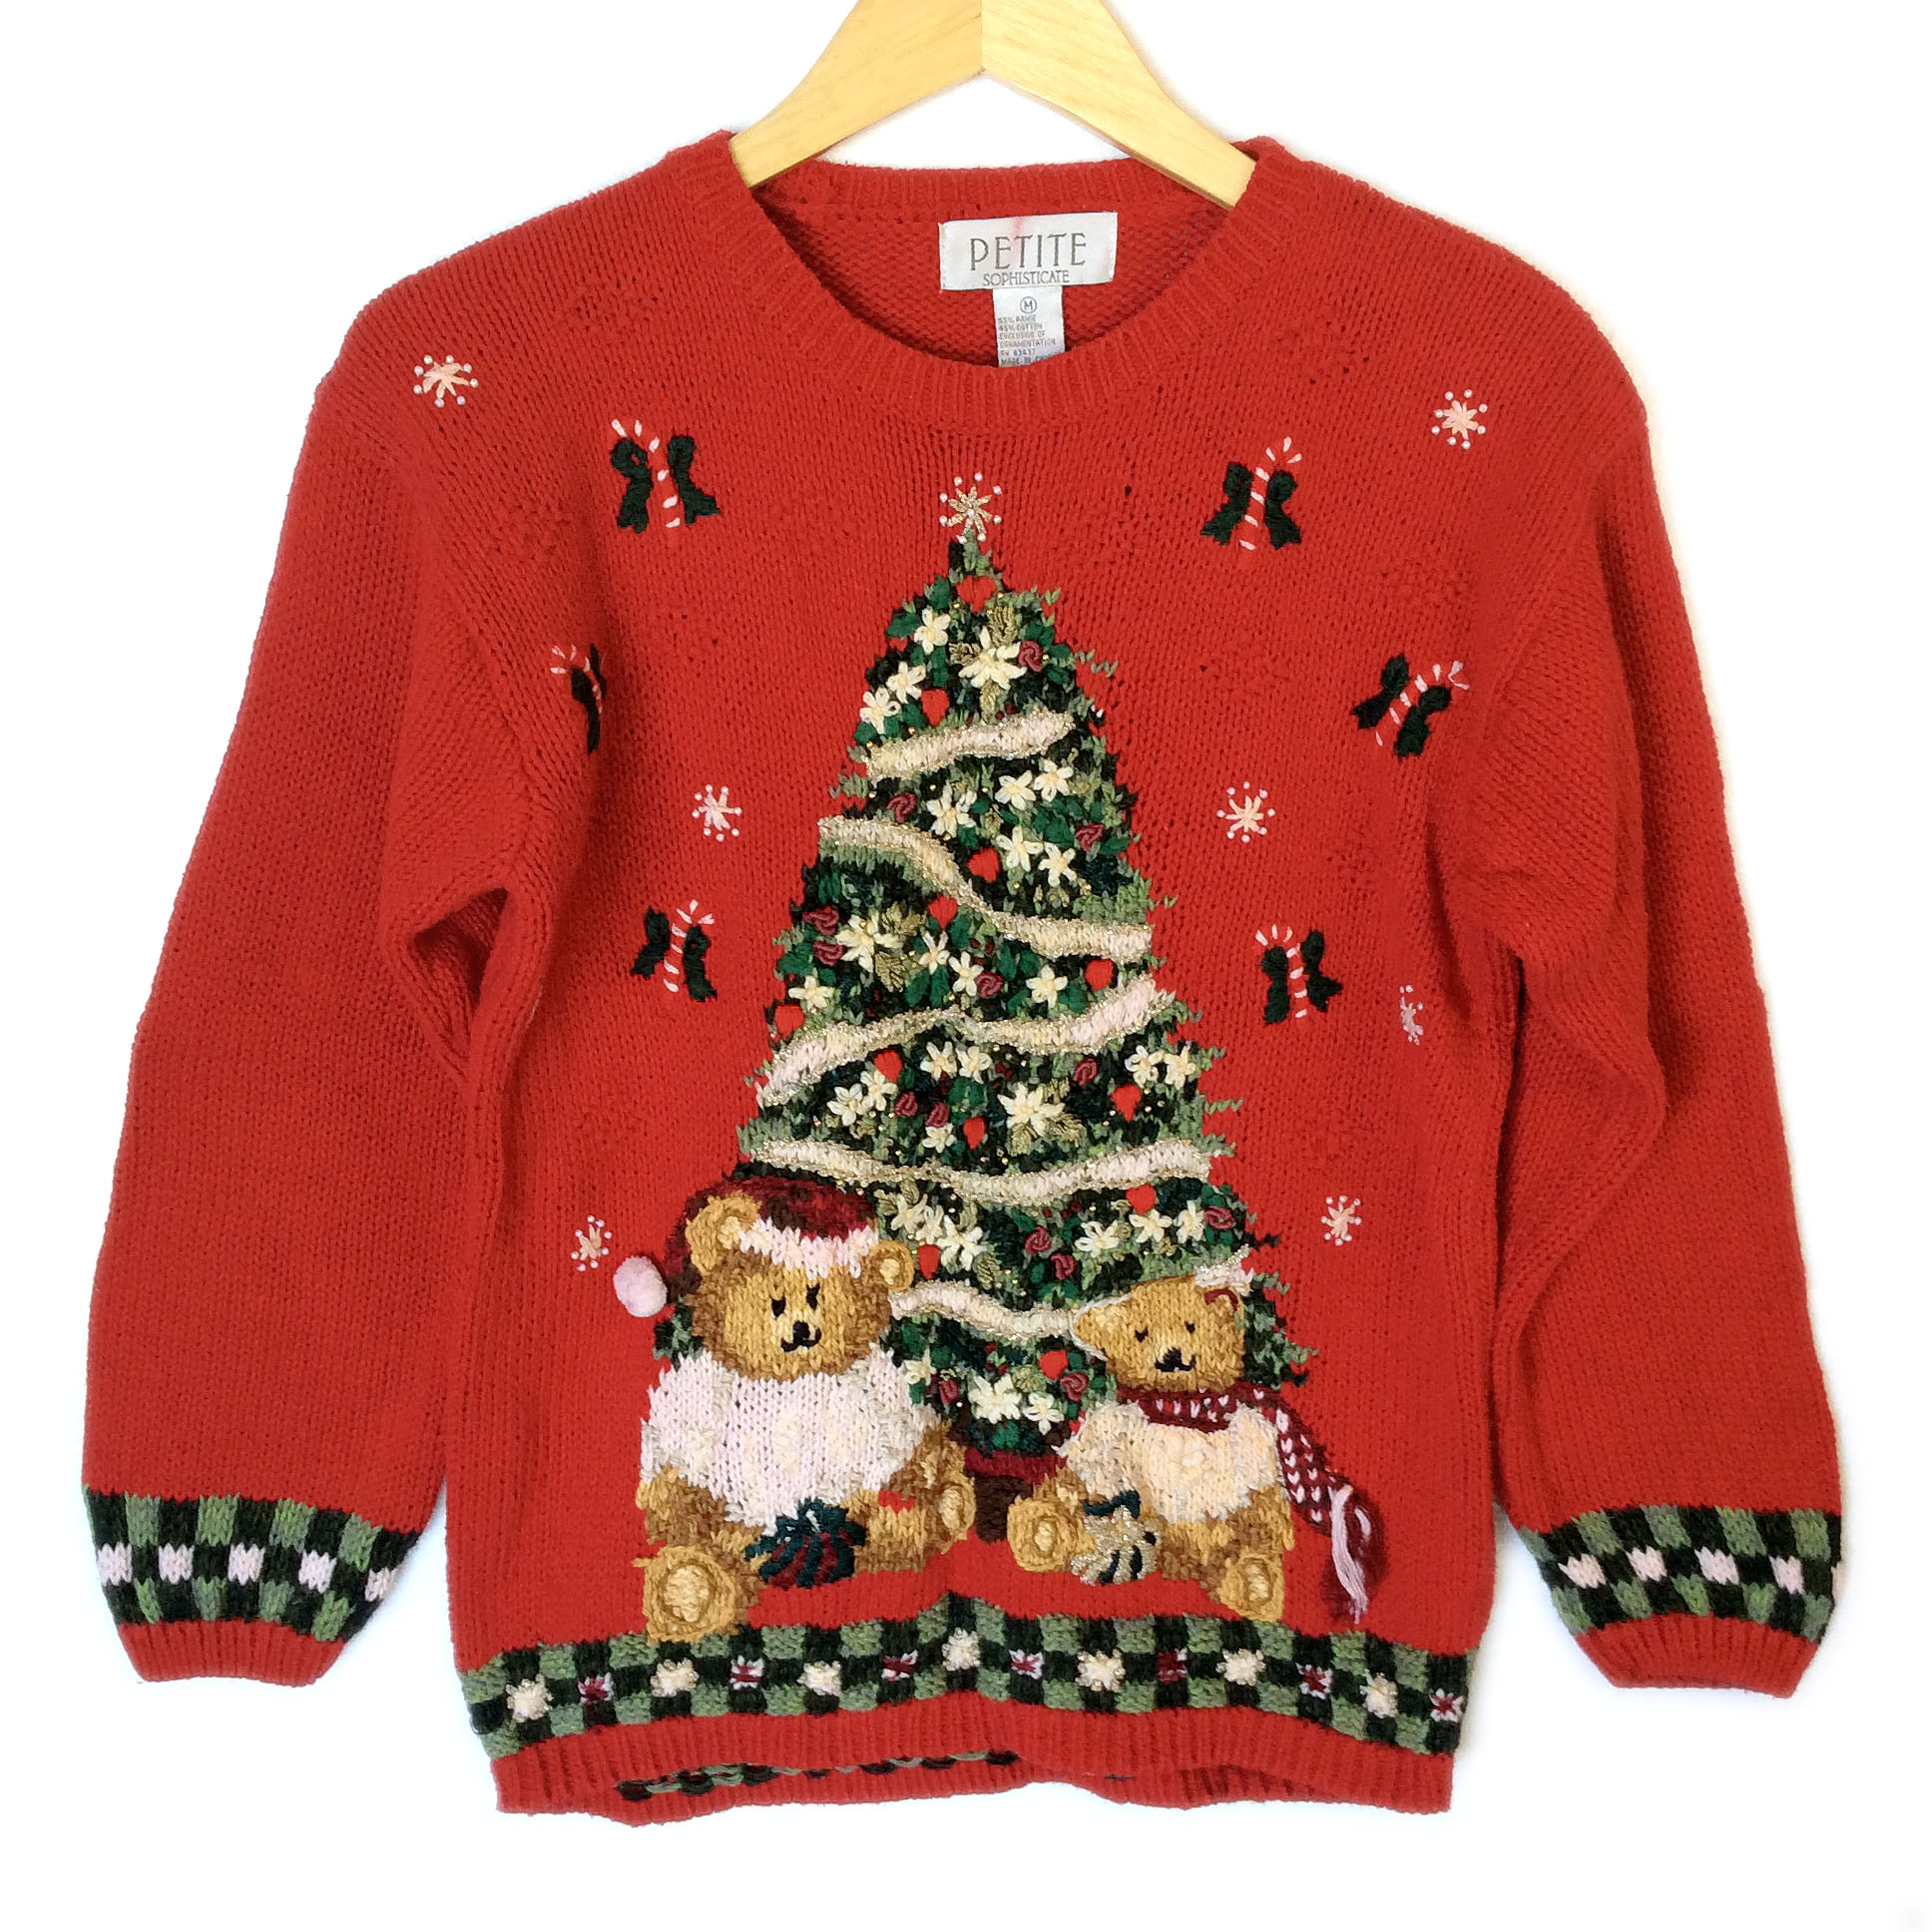 Vintage 90s Christmas Trees and Teddy Bears Ugly Christmas Sweater ...